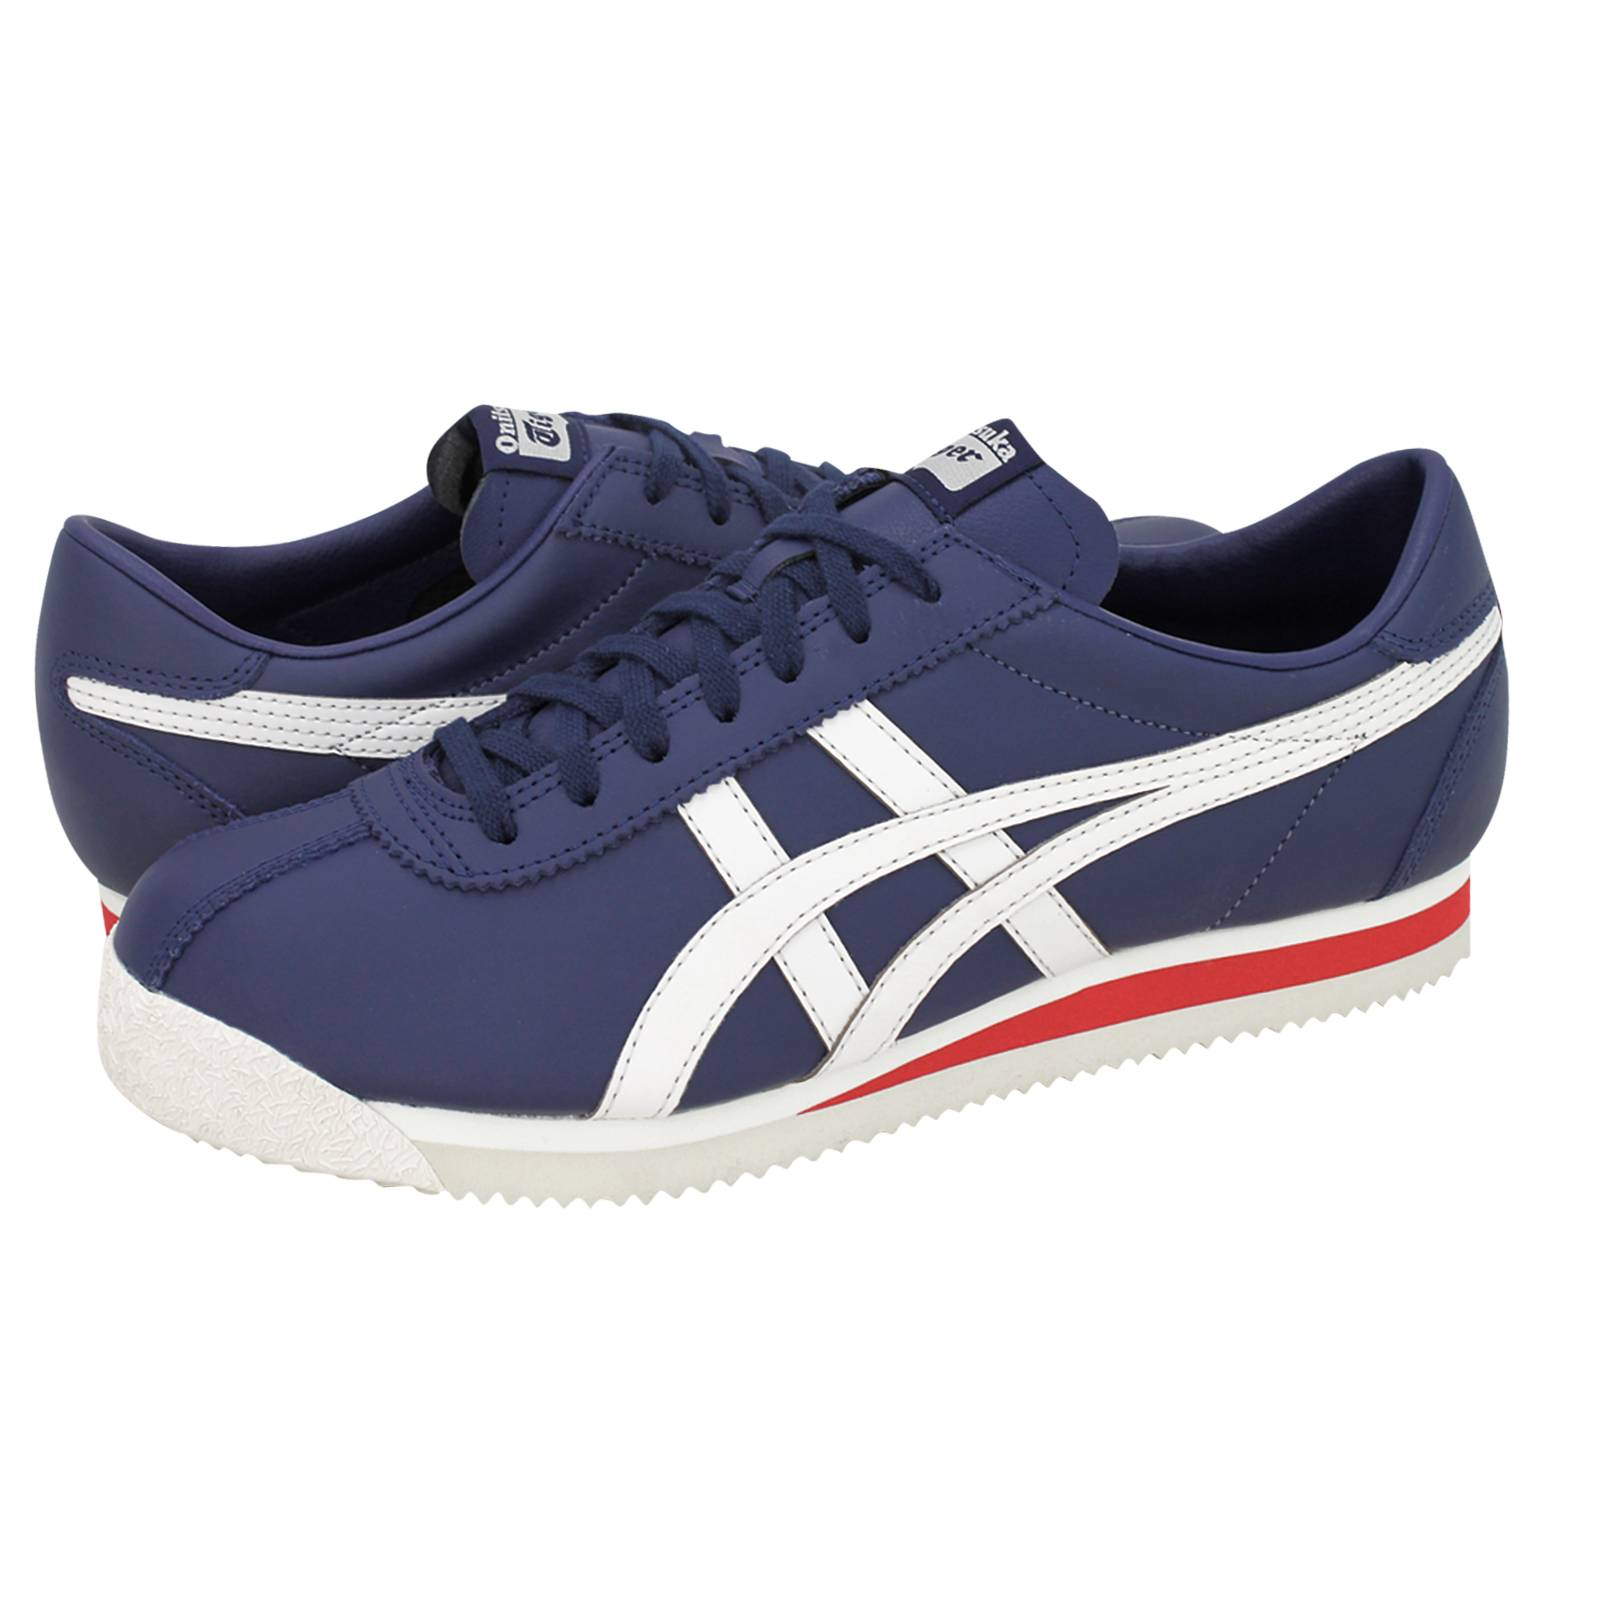 info for d9695 9efce Onitsuka Tiger Tiger Corsair athletic shoes